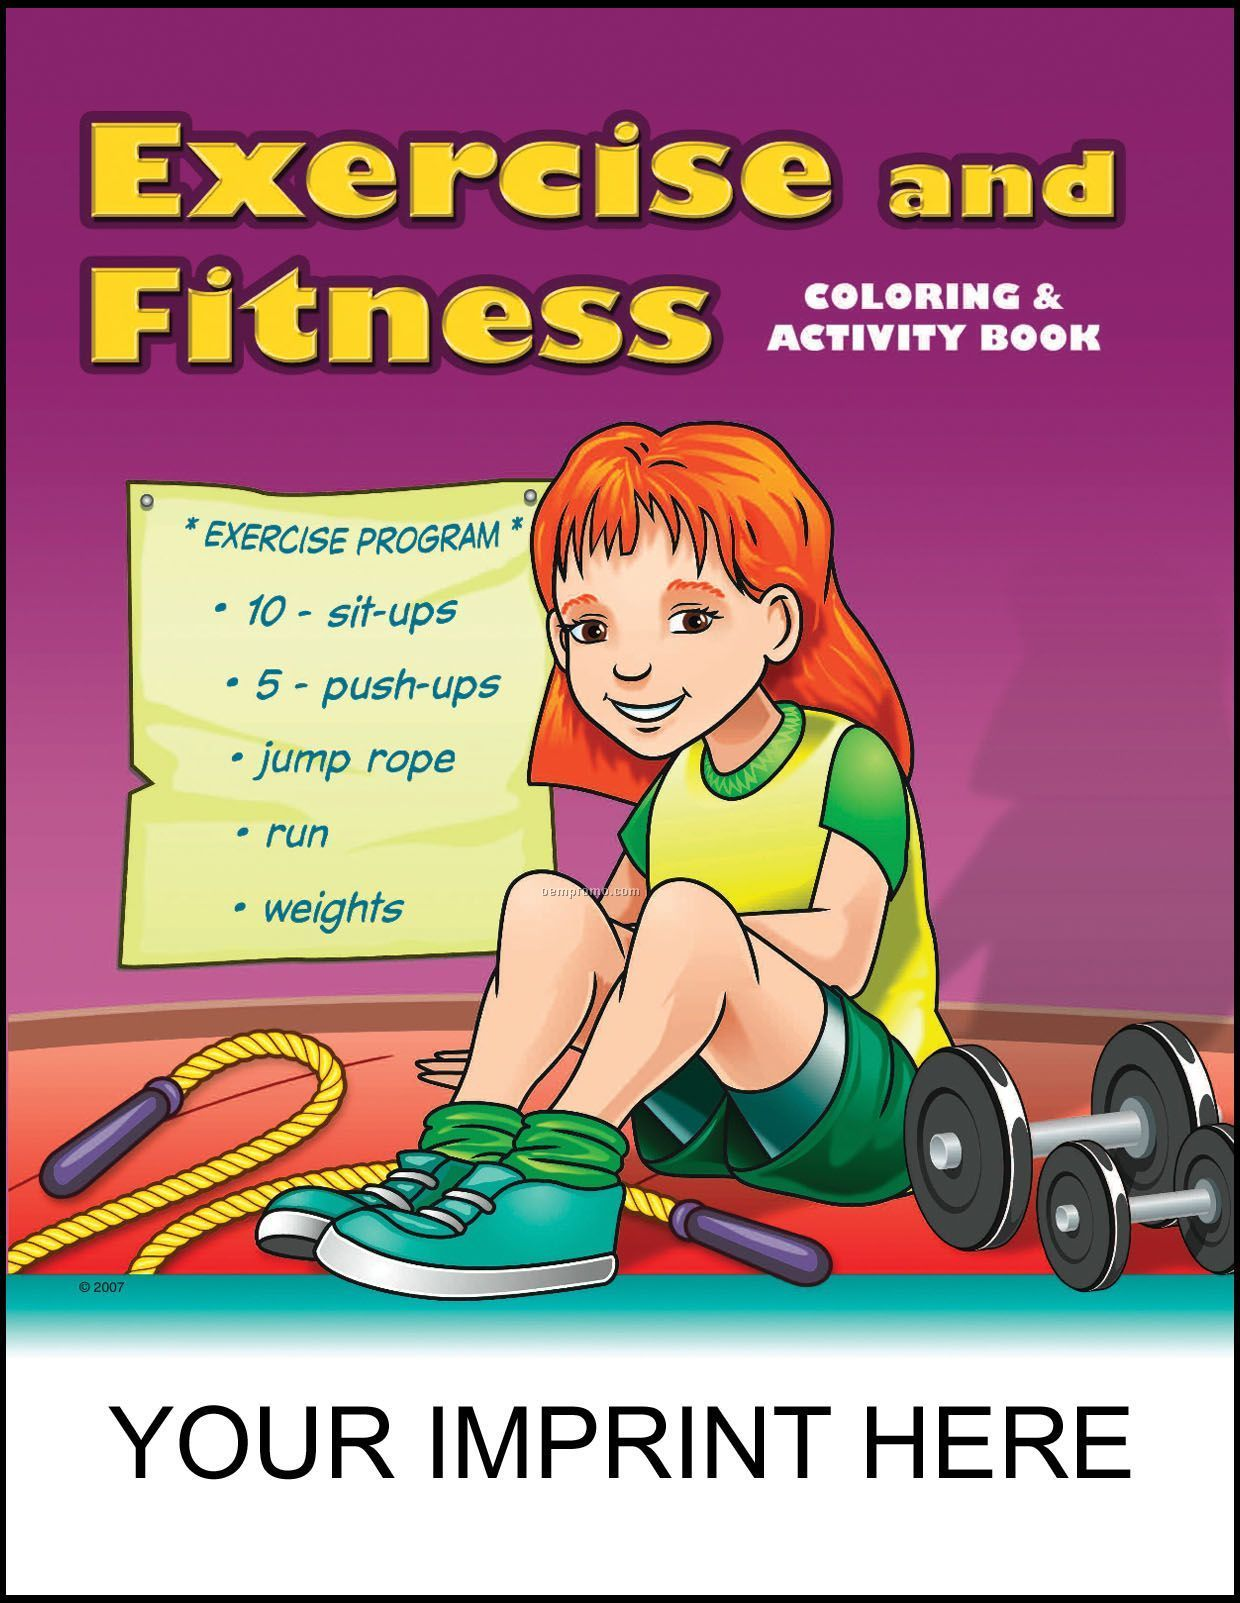 Exercise & Fitness Coloring & Activity Book